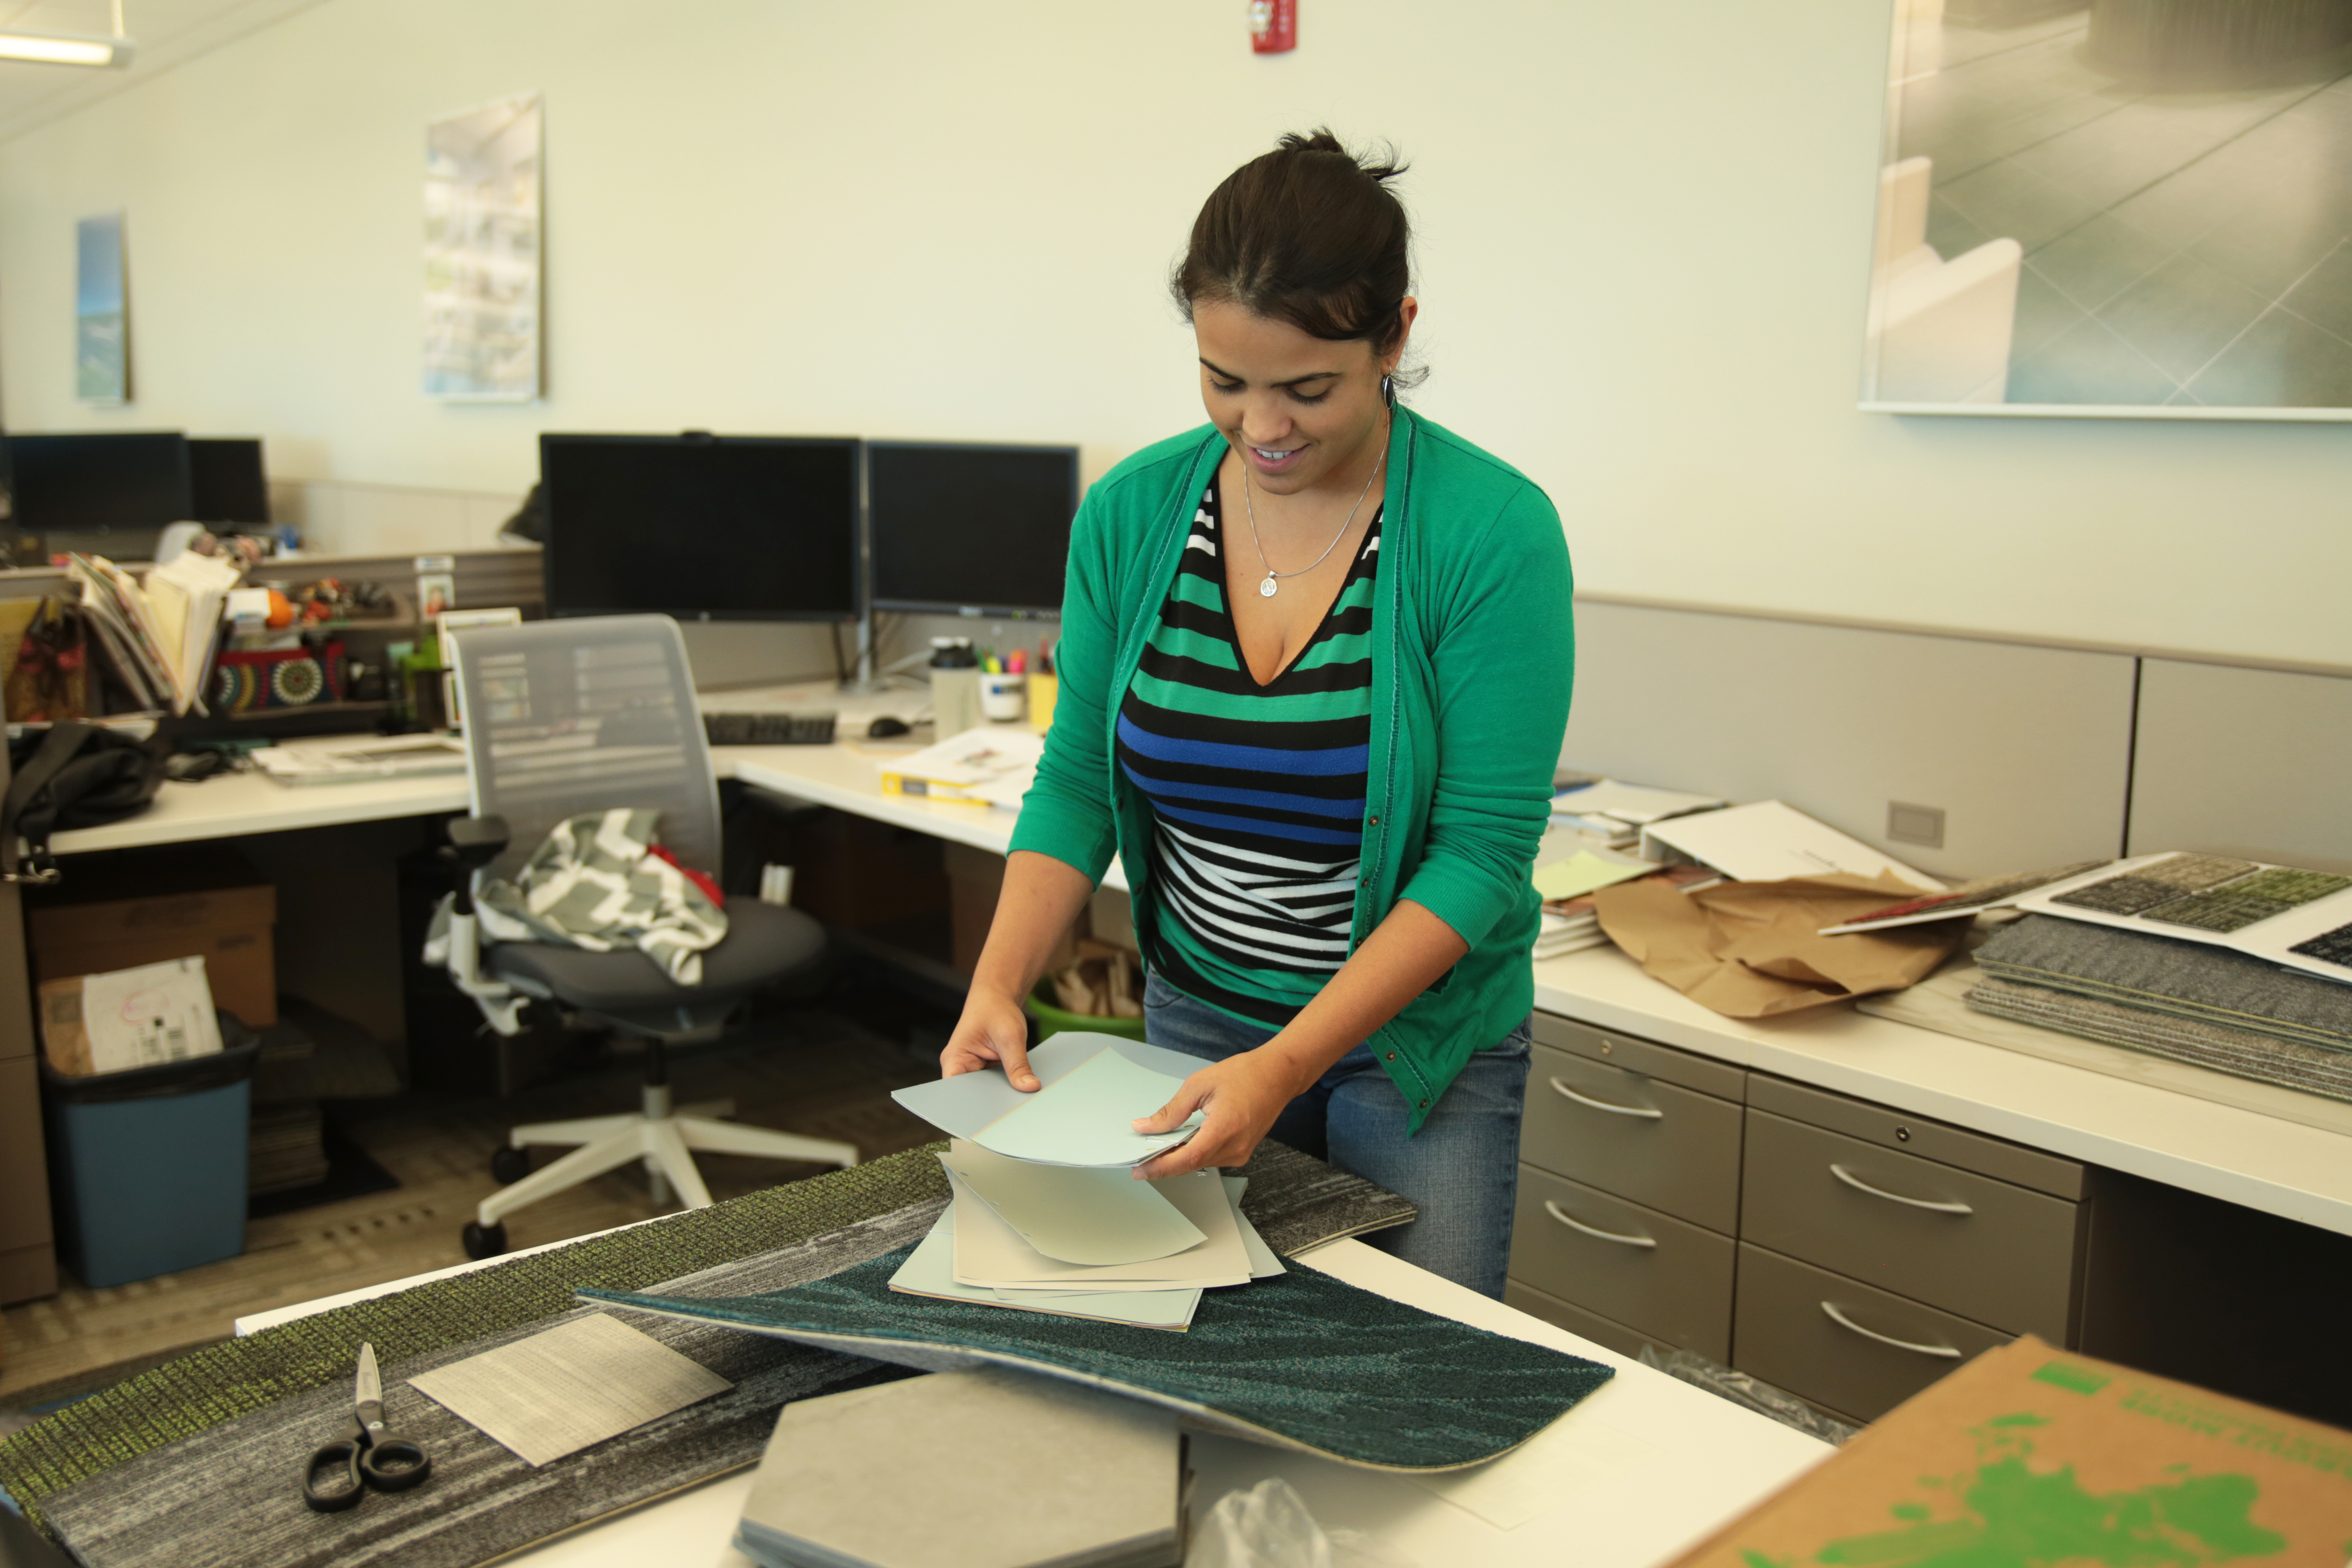 A woman looking over documents dealing with sustainable design